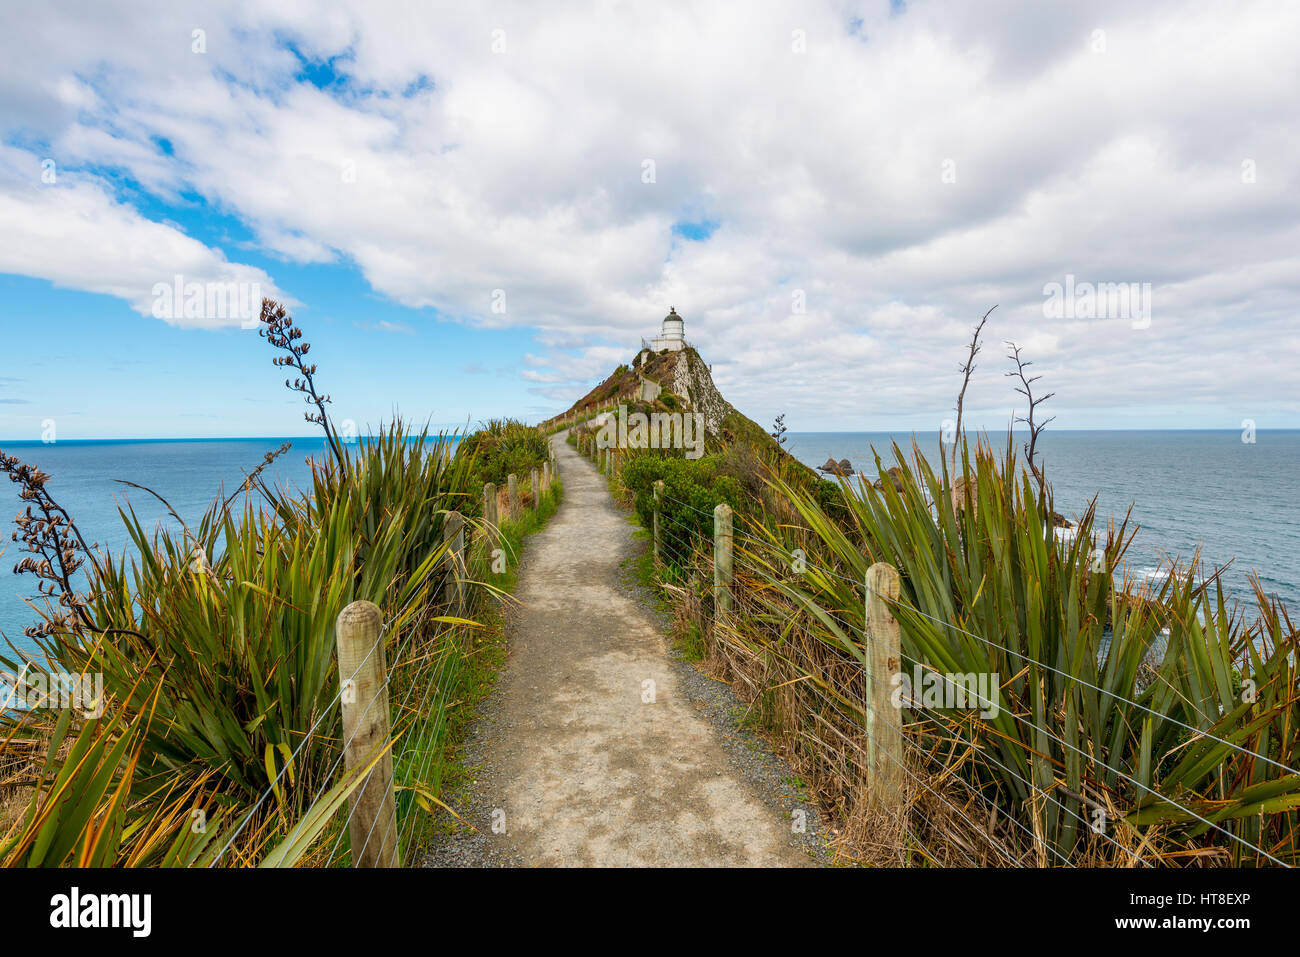 Lighthouse at Nugget Point, Catlins, Southland, New Zealand - Stock Image